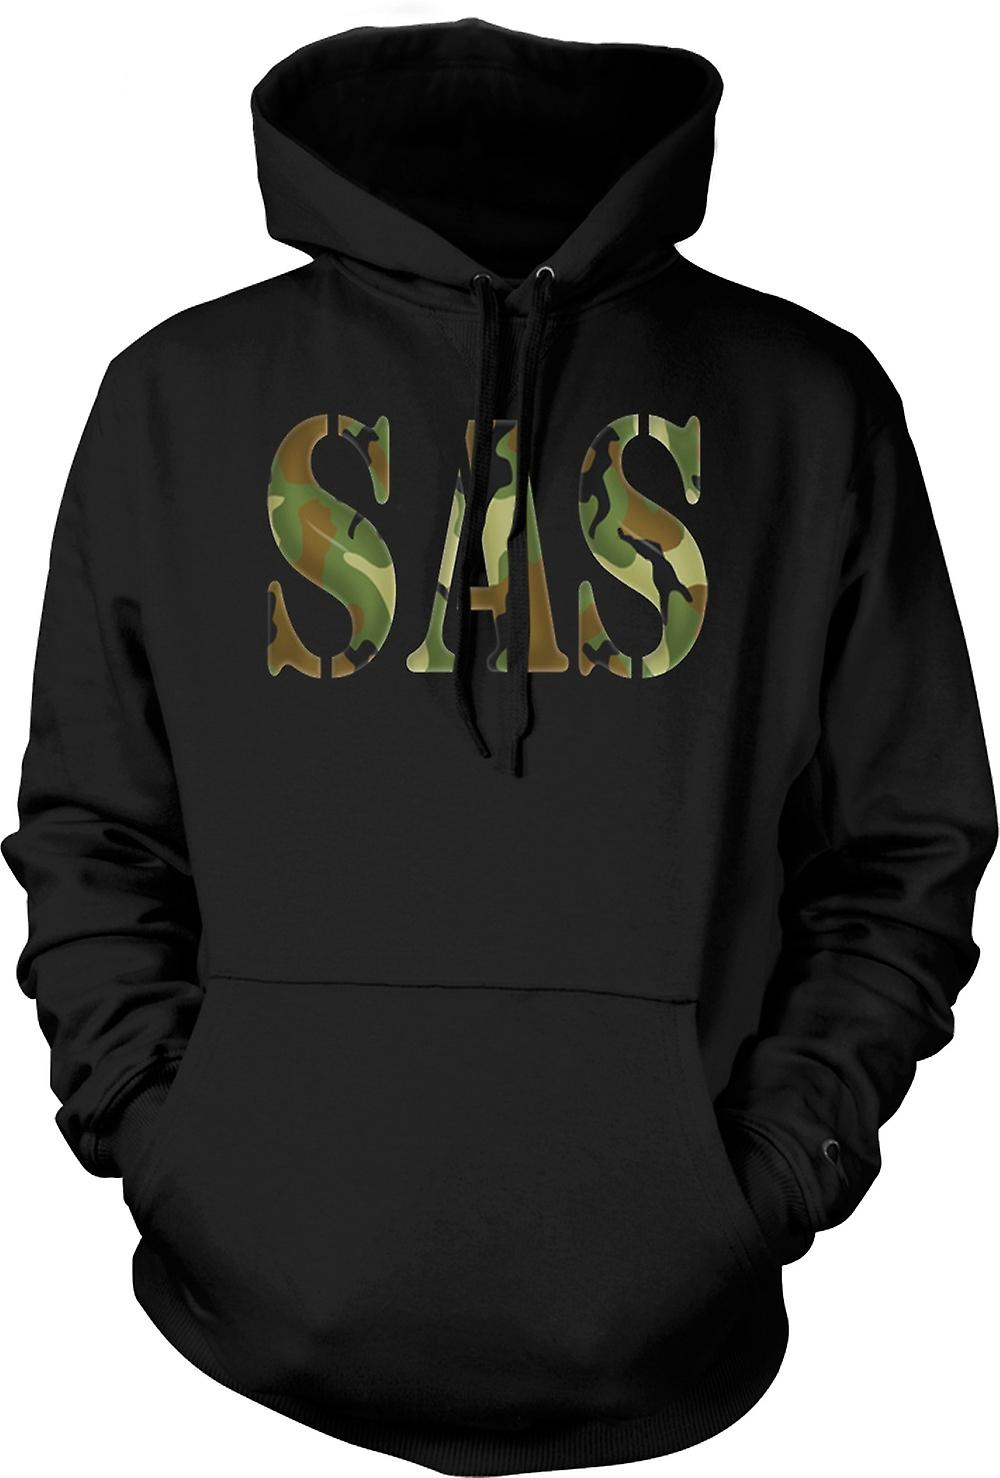 Mens Hoodie - SAS Camo - UK Special Forces